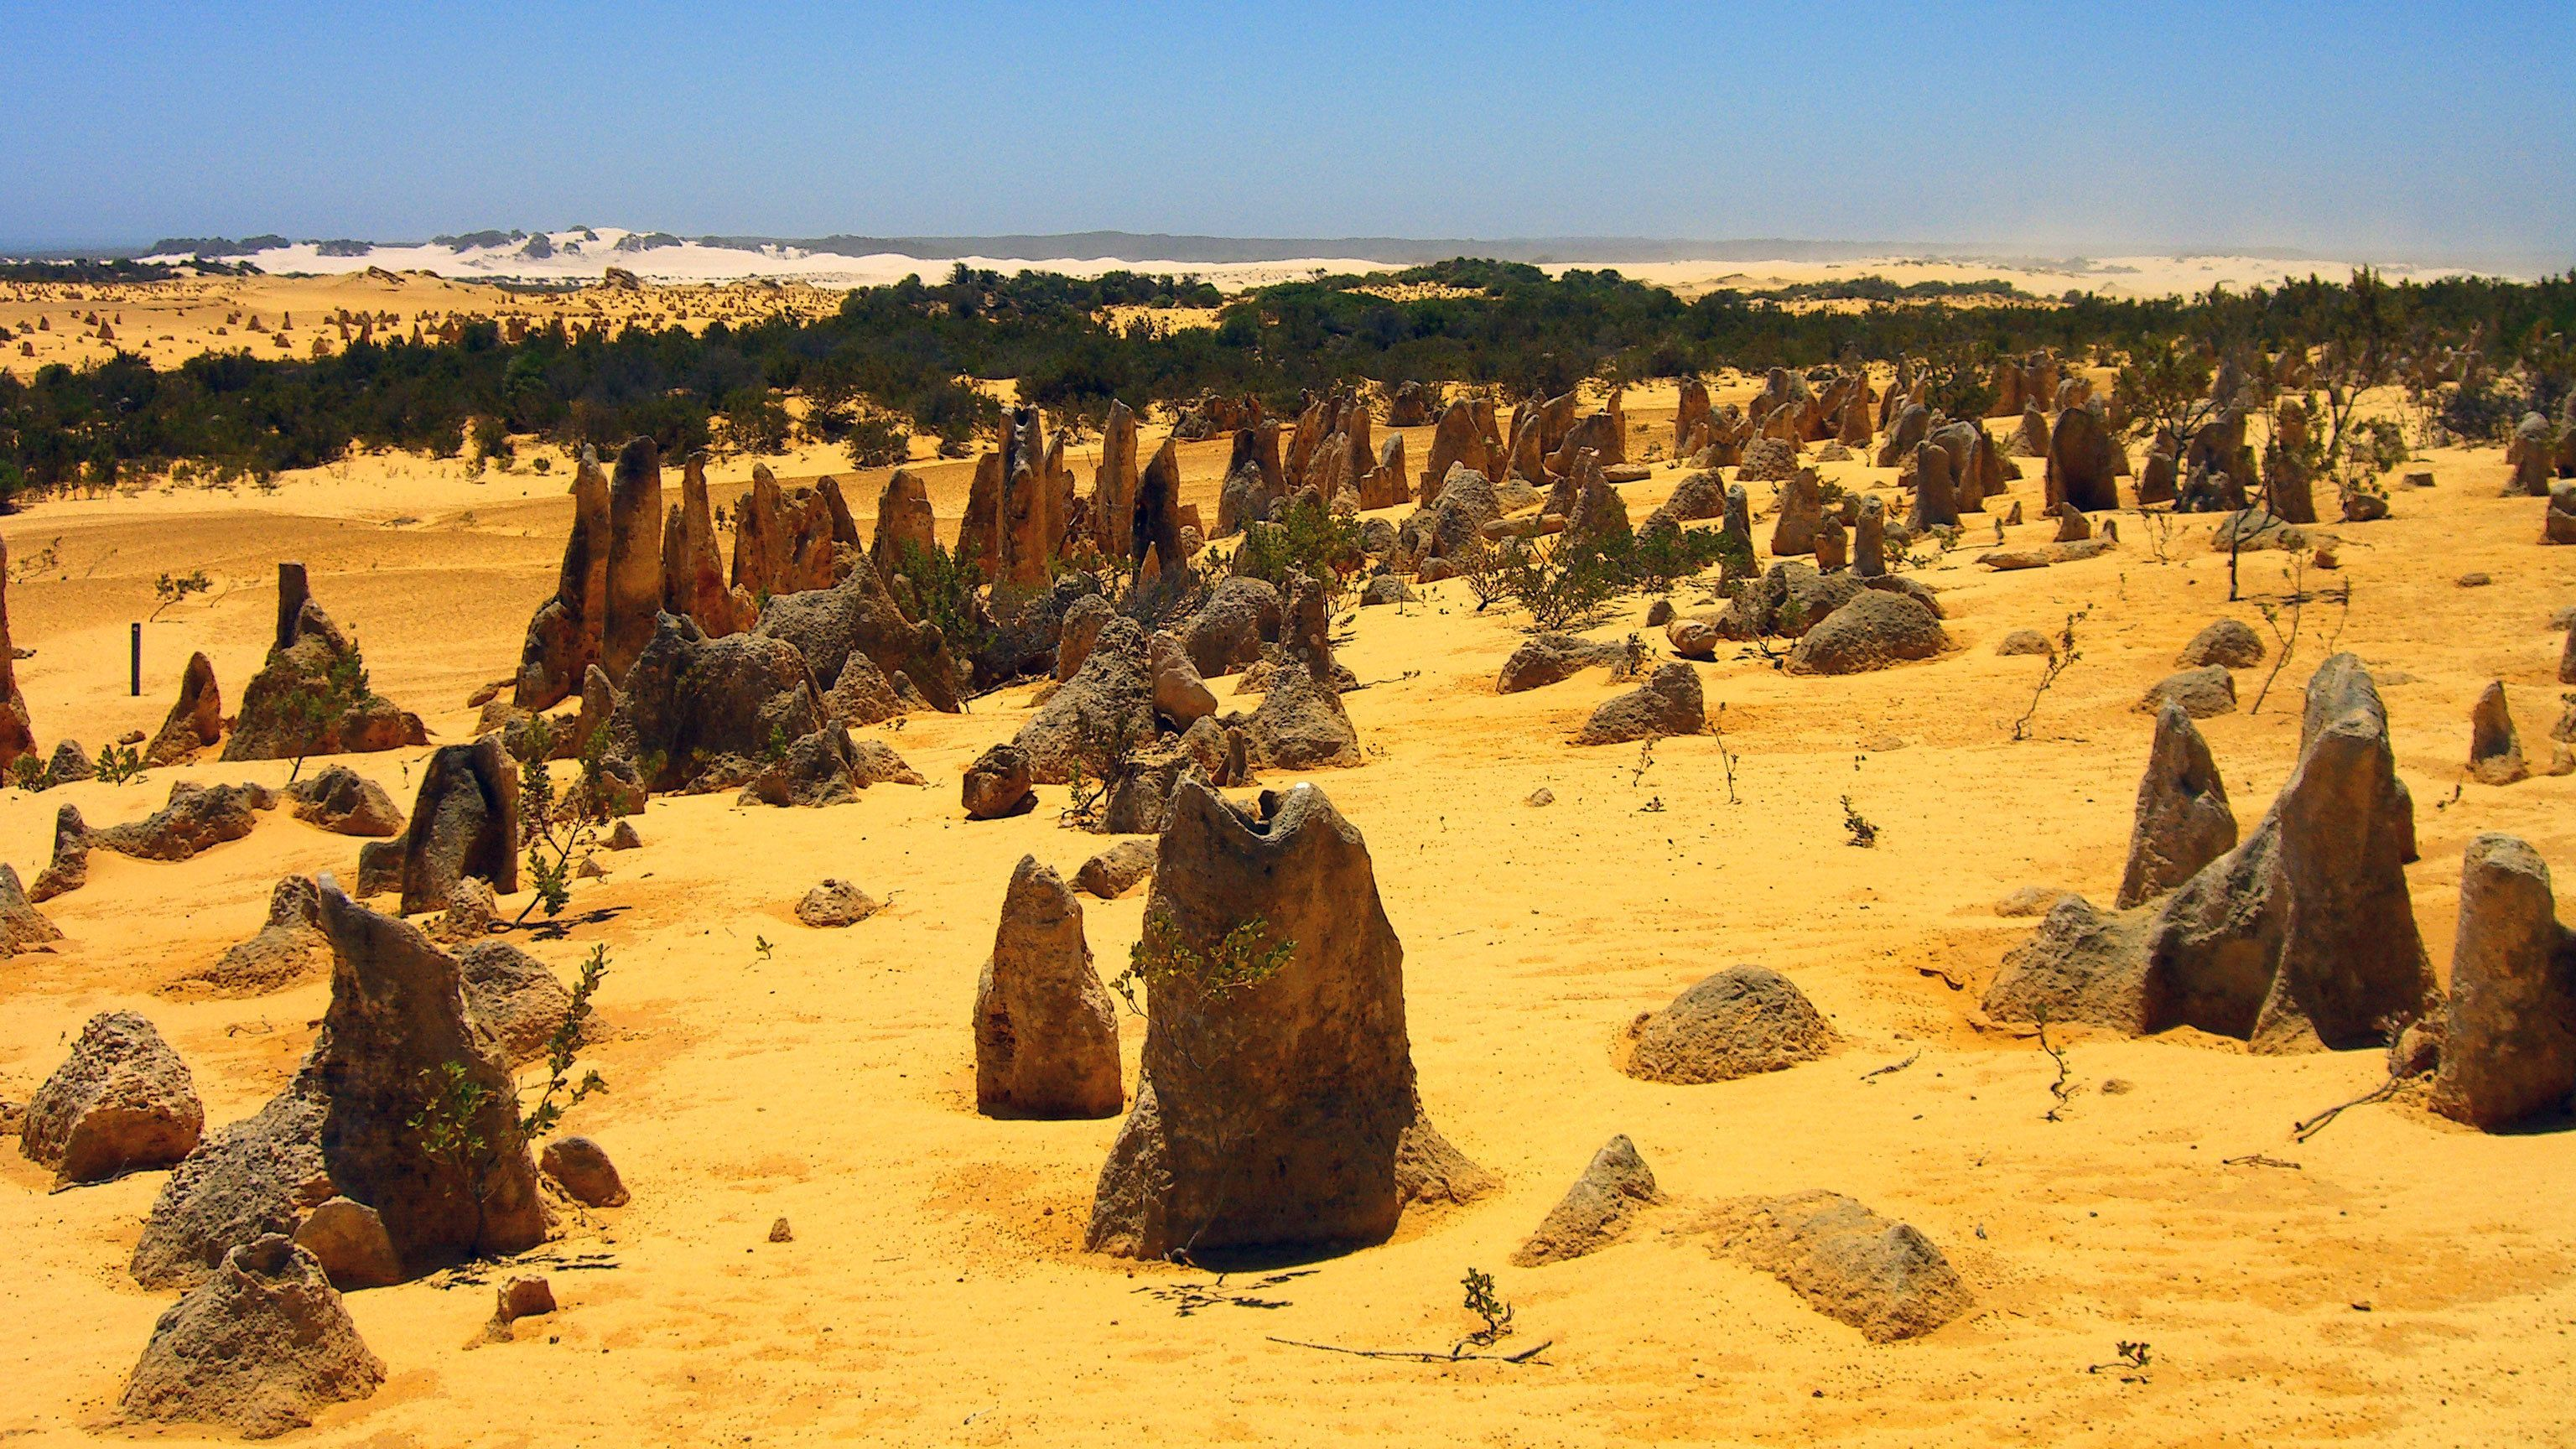 Iconic rock Formations in the Pinnacles desert